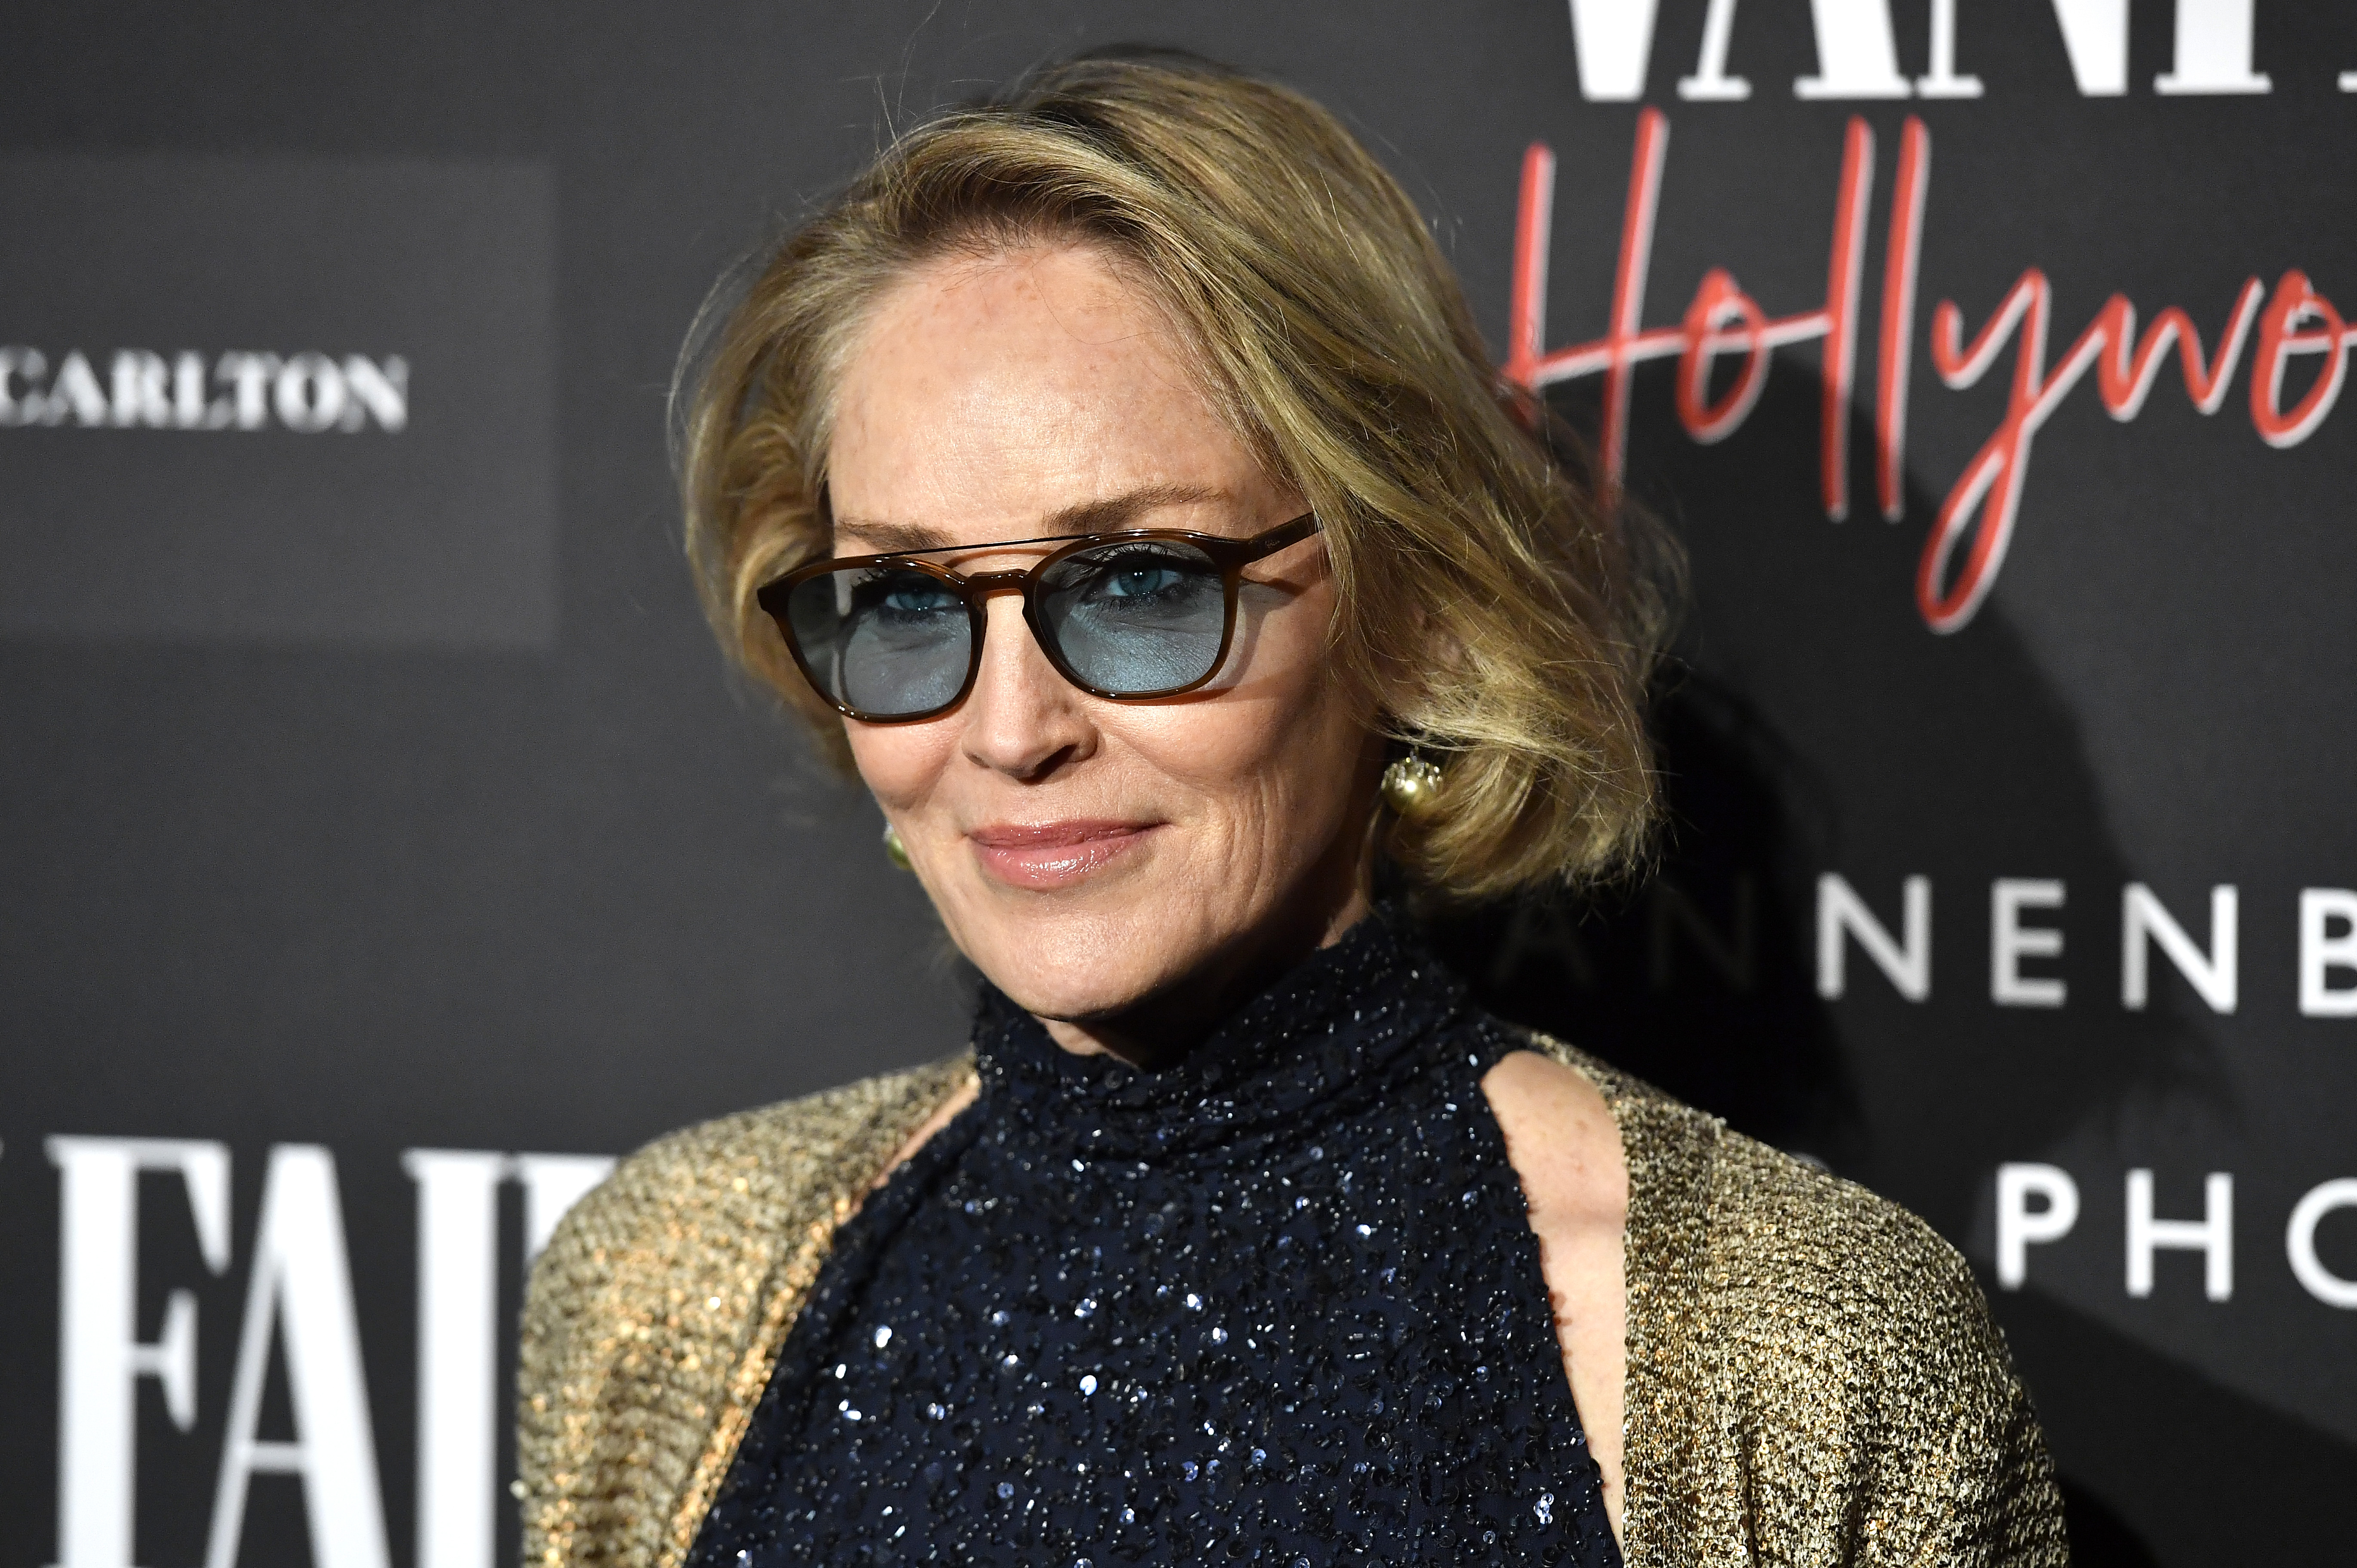 Vanity Fair: Hollywood Calling - The Stars, The Parties And The Power Brokers - Arrivals